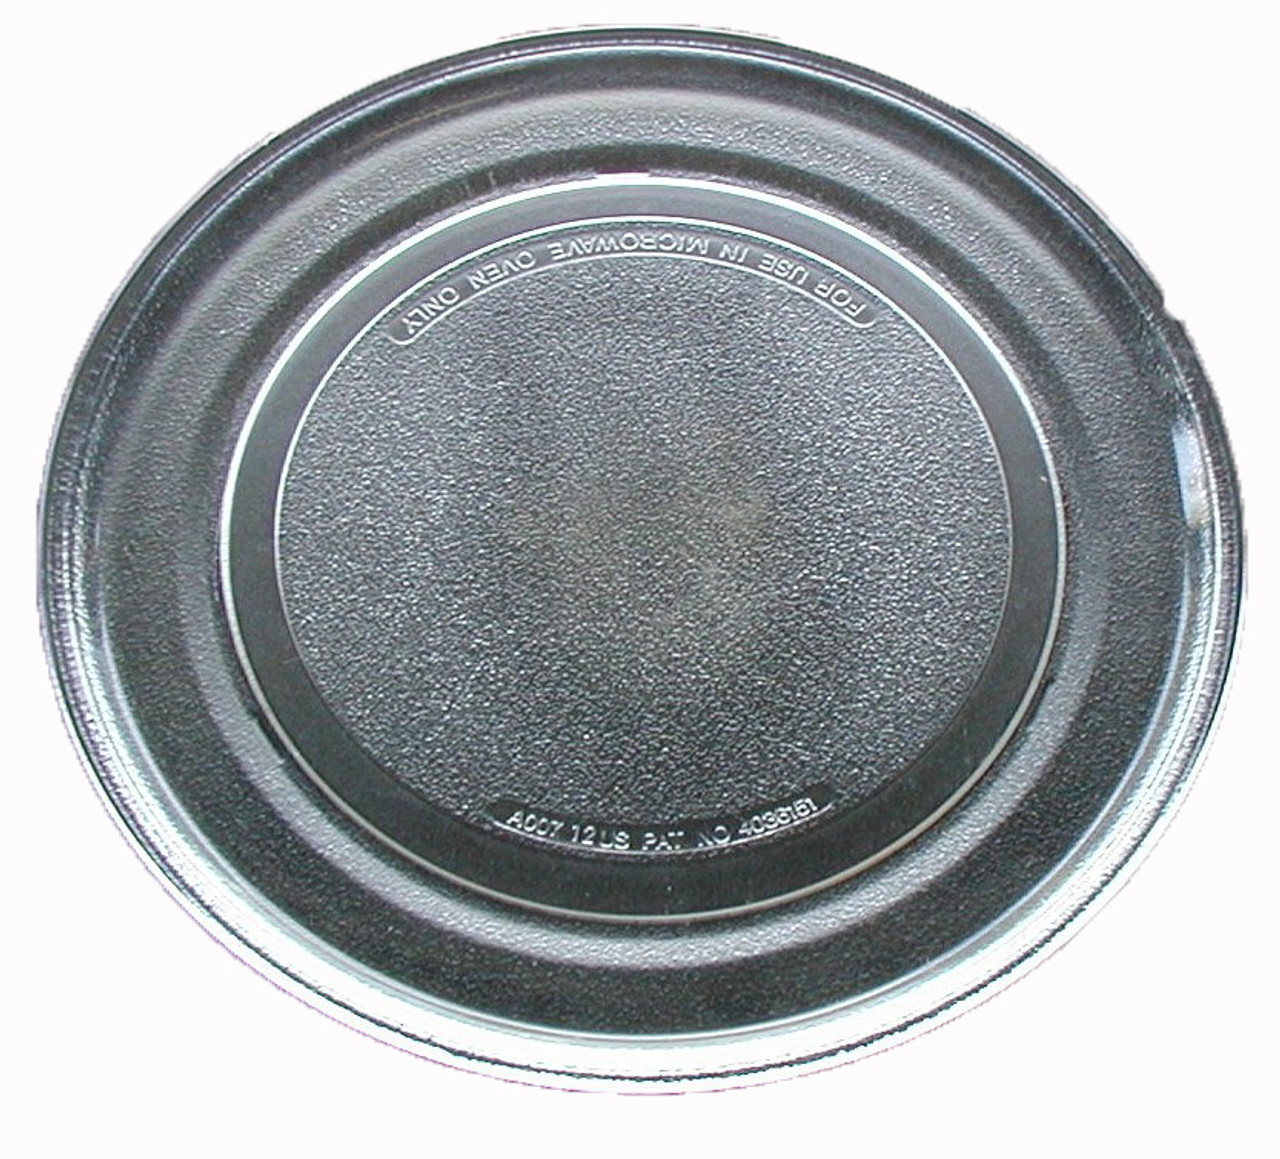 Tray 16 inches Dacor Microwave Glass Turntable Plate